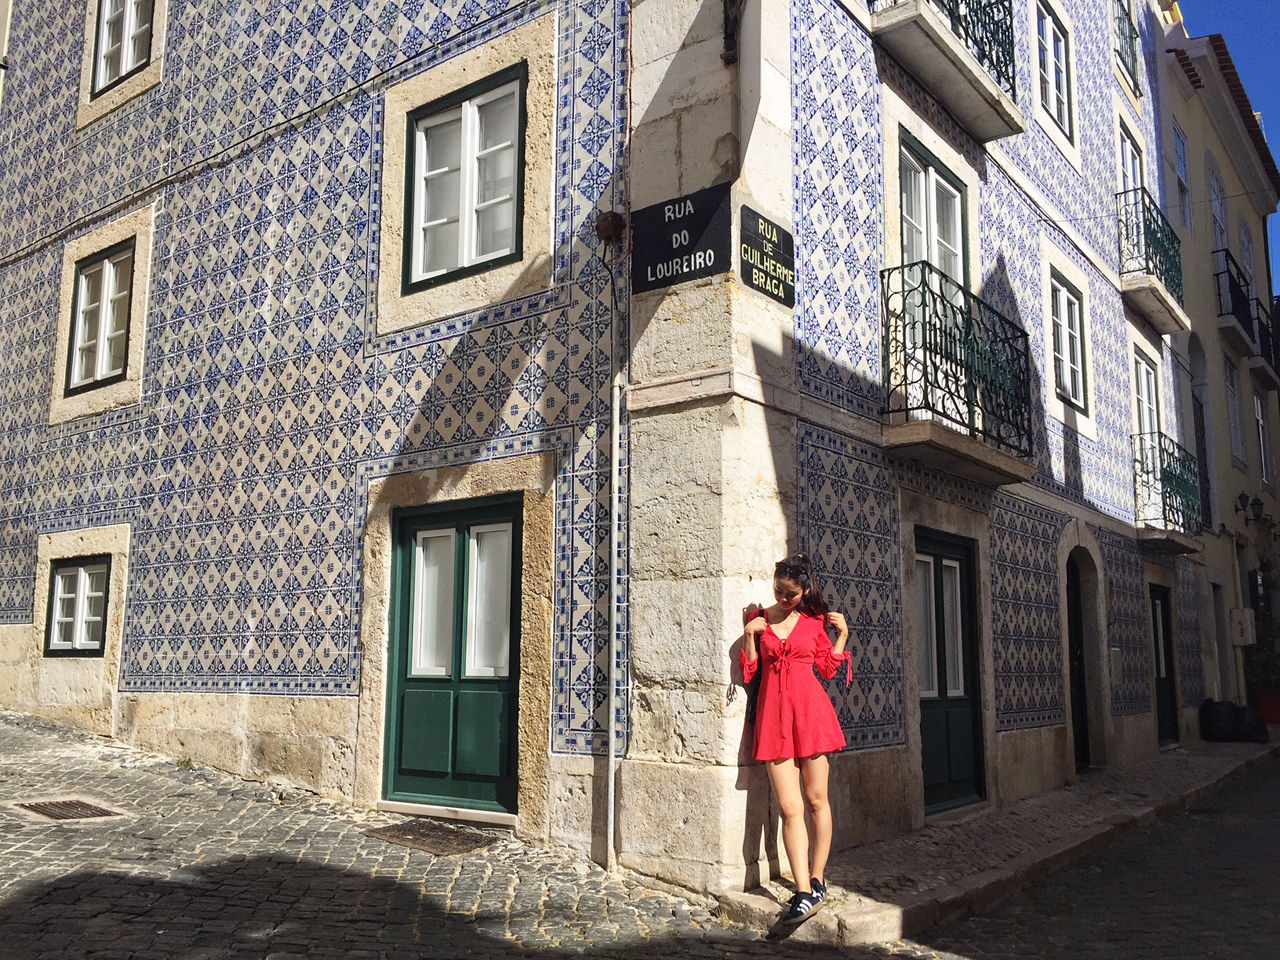 Holiday style in Lisbon